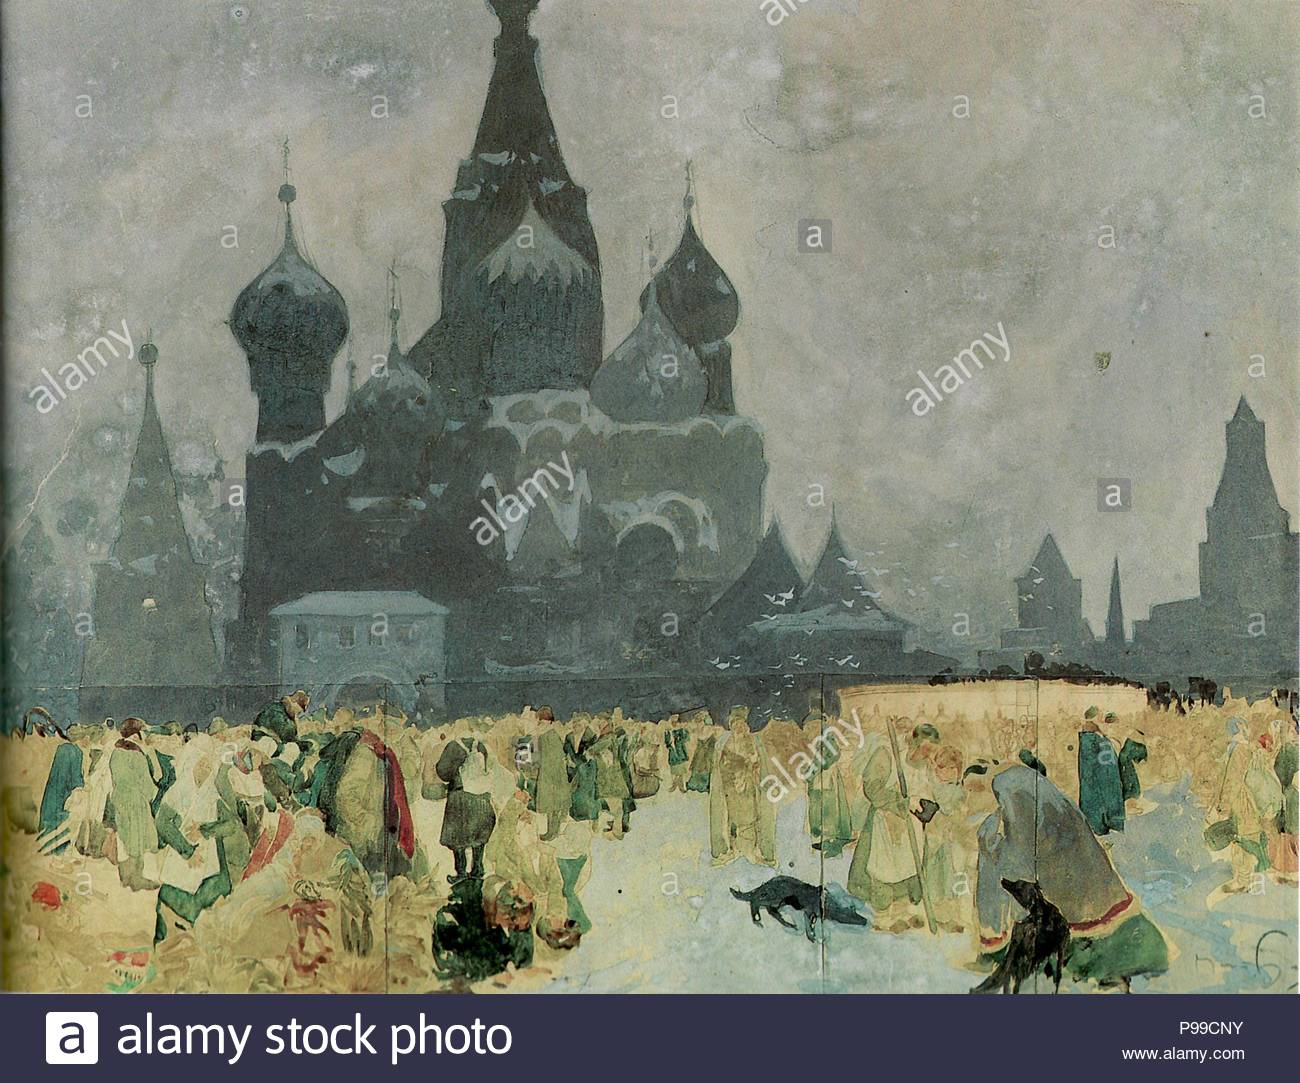 The abolition of serfdom in Russia: causes and consequences 49